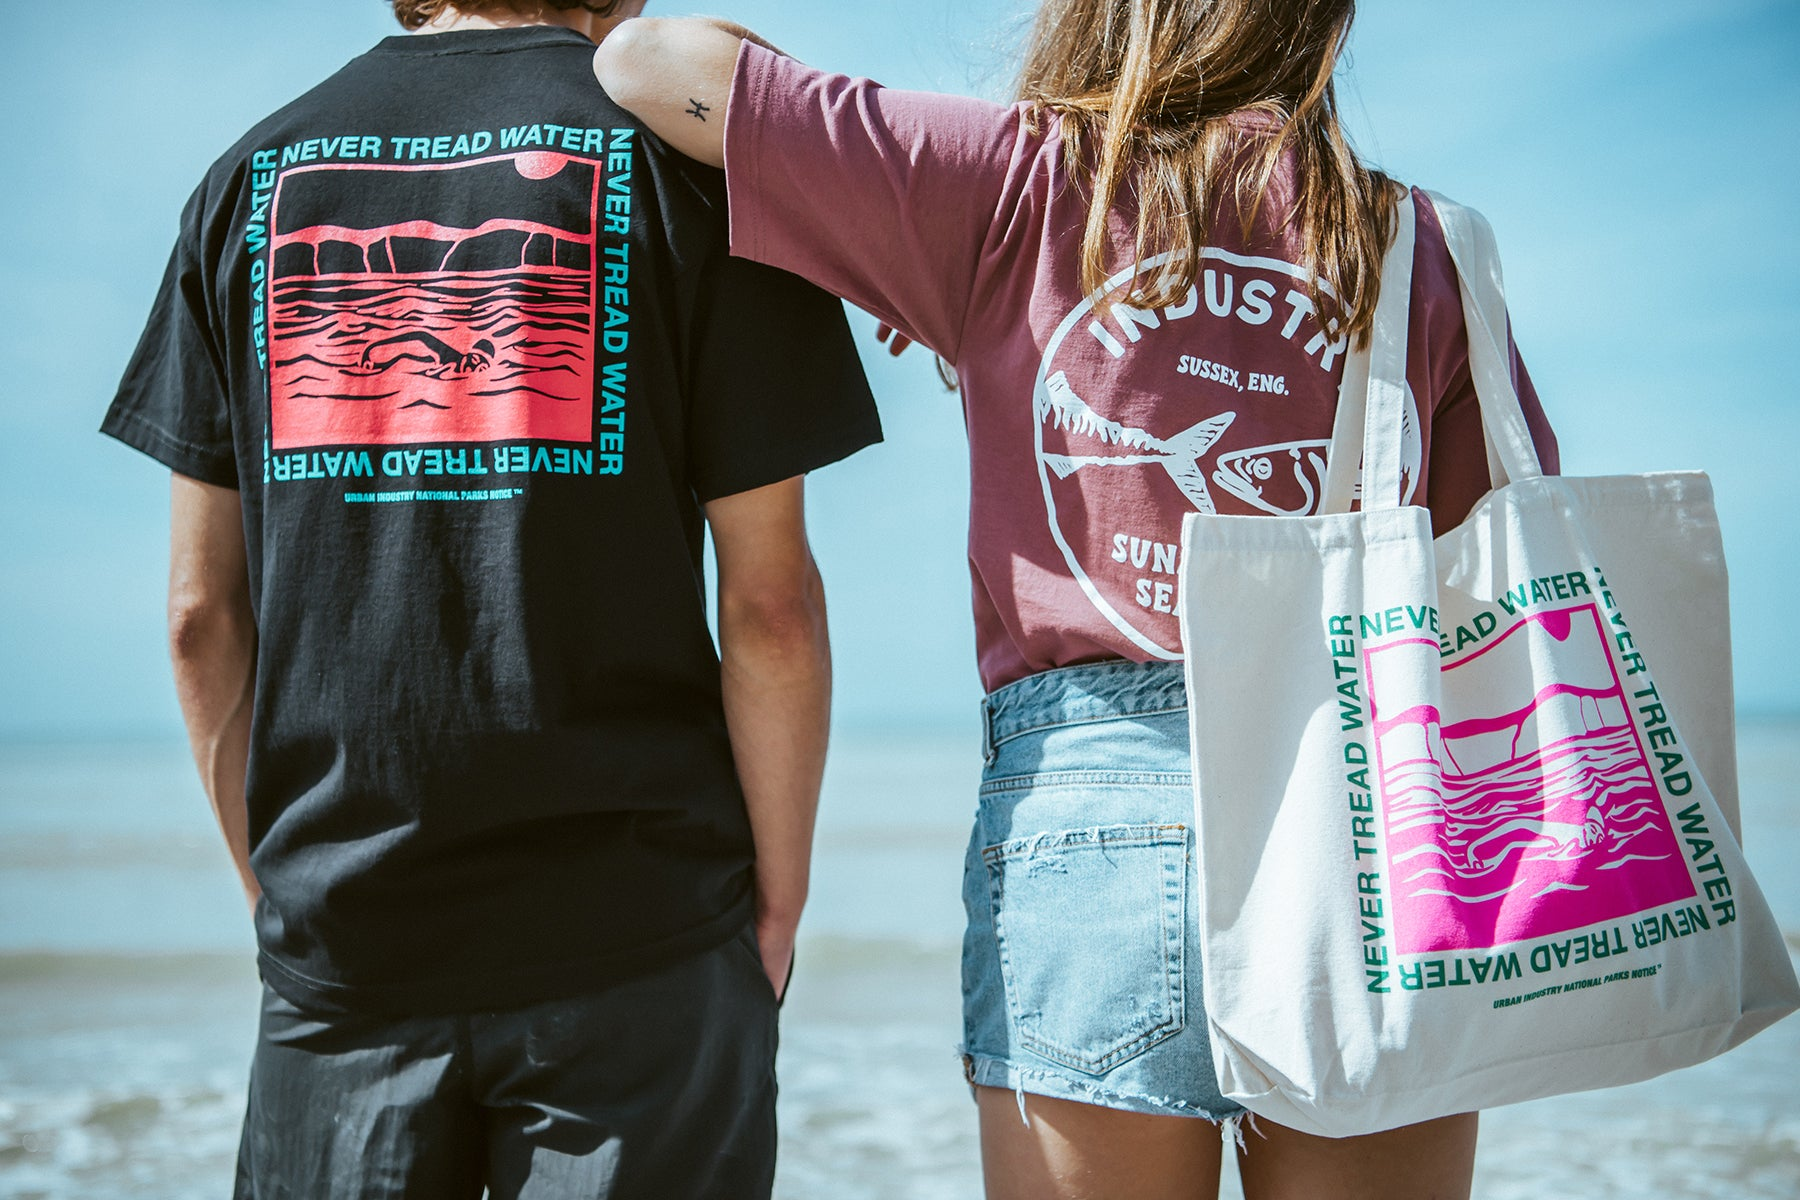 Urban Industry Summer 18 Capsule, Never Tread Water and Fish Industry T-shirt in Eastbourne